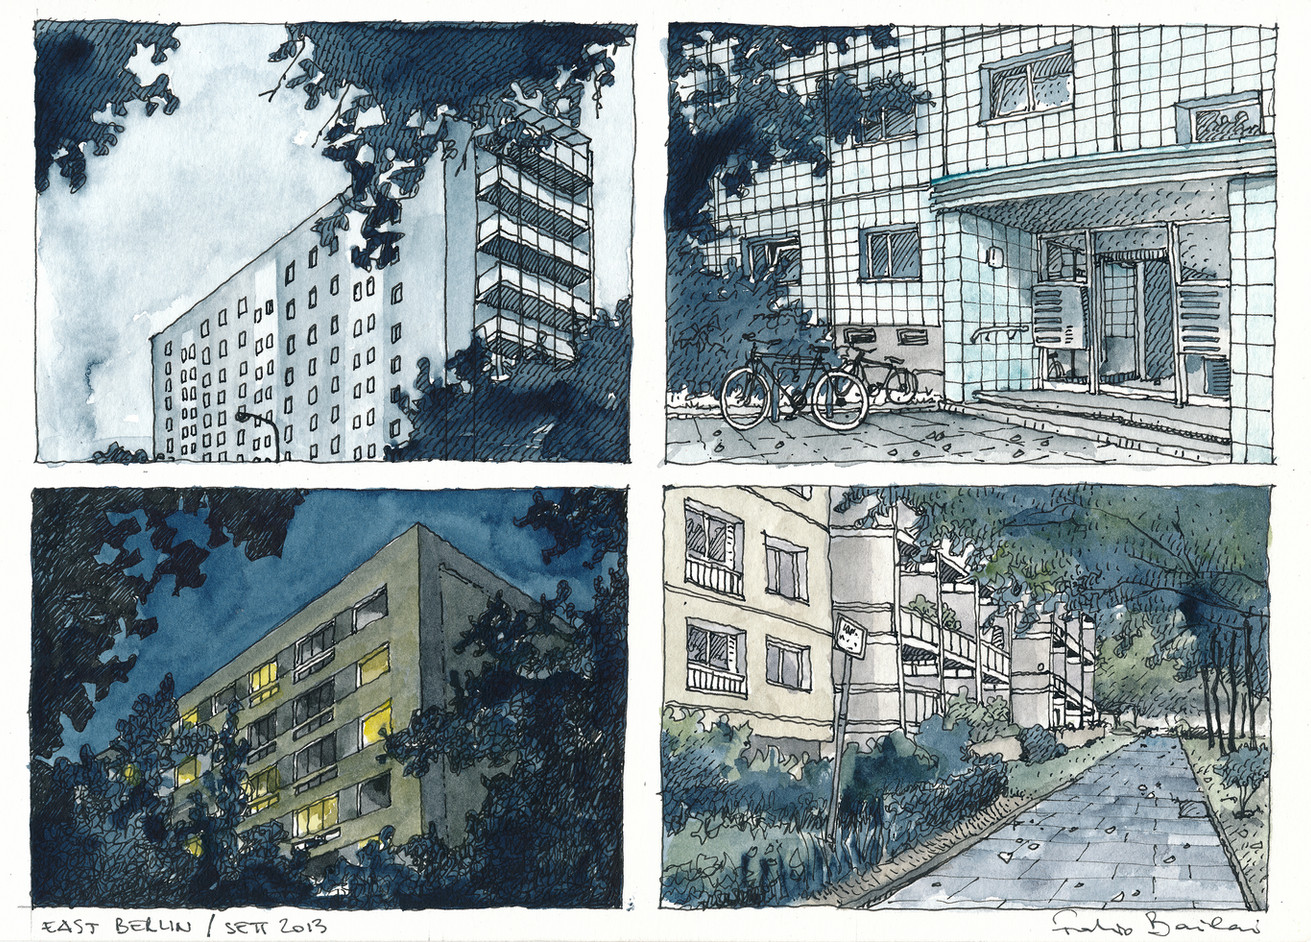 East Berlin - Sketches